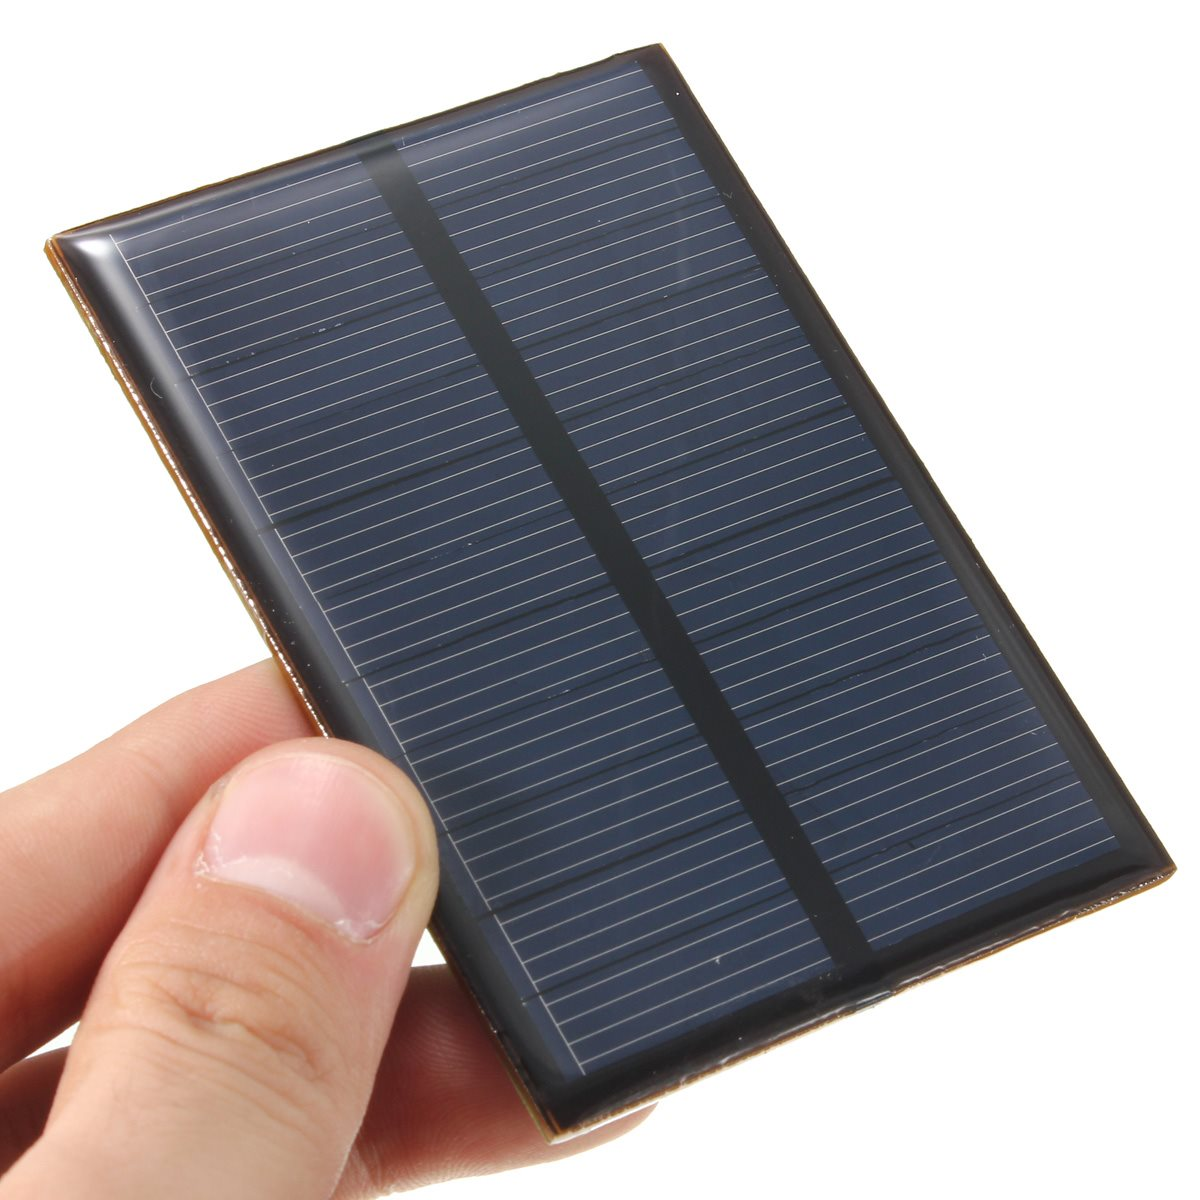 5V 1.25W Monocrystalline Silicone Epoxy Solar Panels For Battery Cell Phone